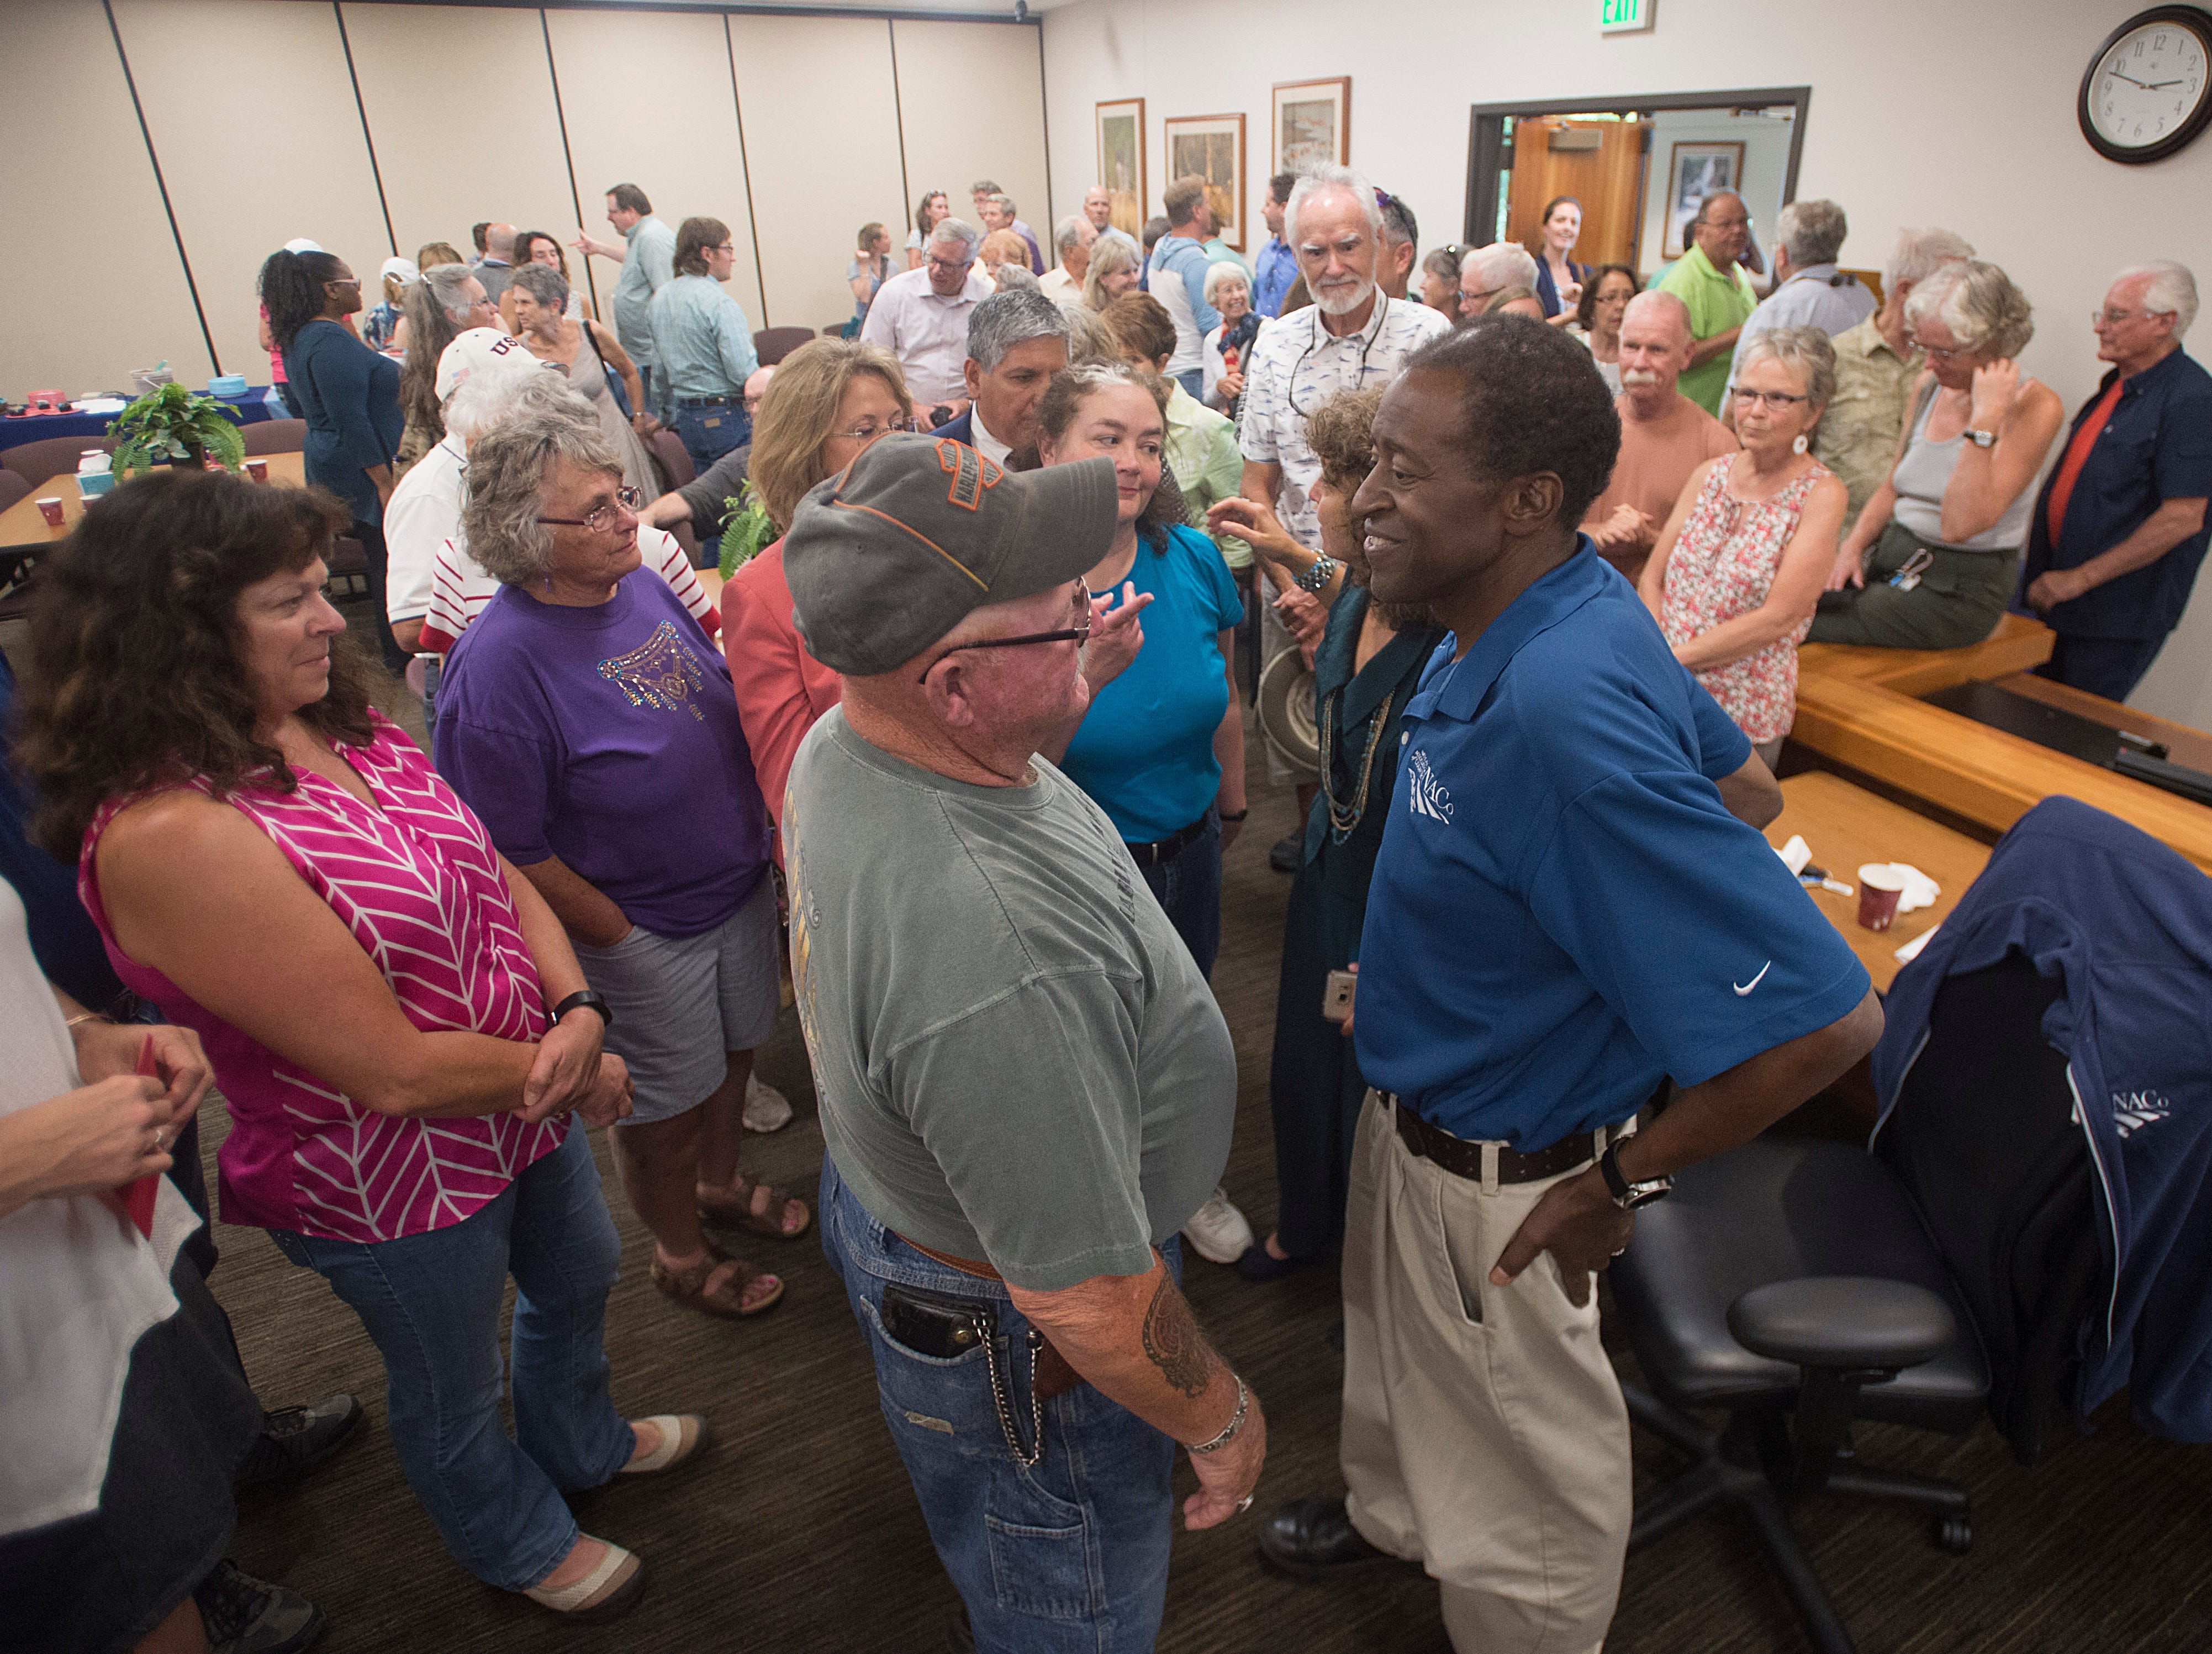 County Commissioner Lew Gaiter III chats with Pat Young as people crowd around during a gathering to celebrate his life at the Larimer County Courthouse on Wednesday, August 15, 2018. Gaiter III was given six to 12 weeks to live after the cancer he has had for nearly a decade began to take its toll earlier this month.